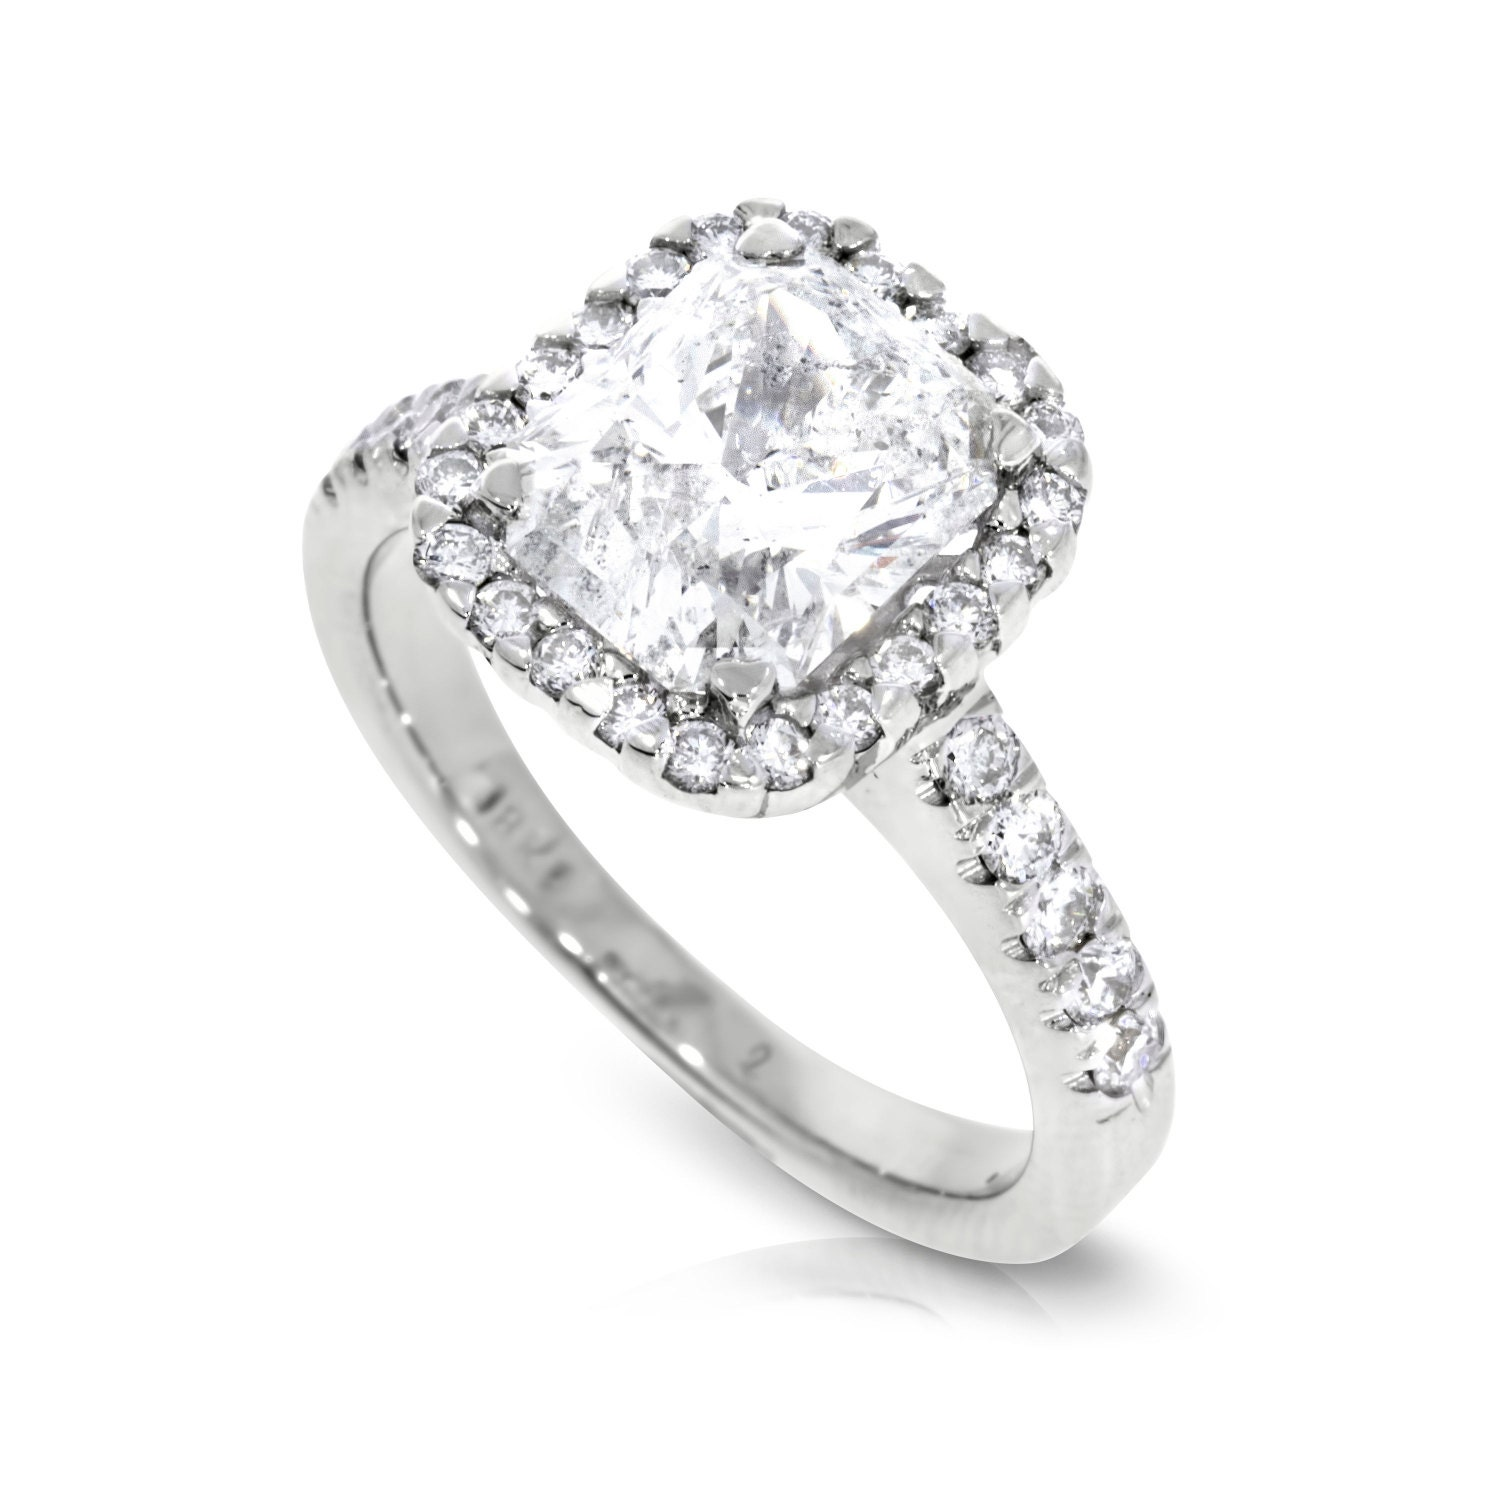 Solitaire Engagement Rings Size 8 18K White Gold Solitaire